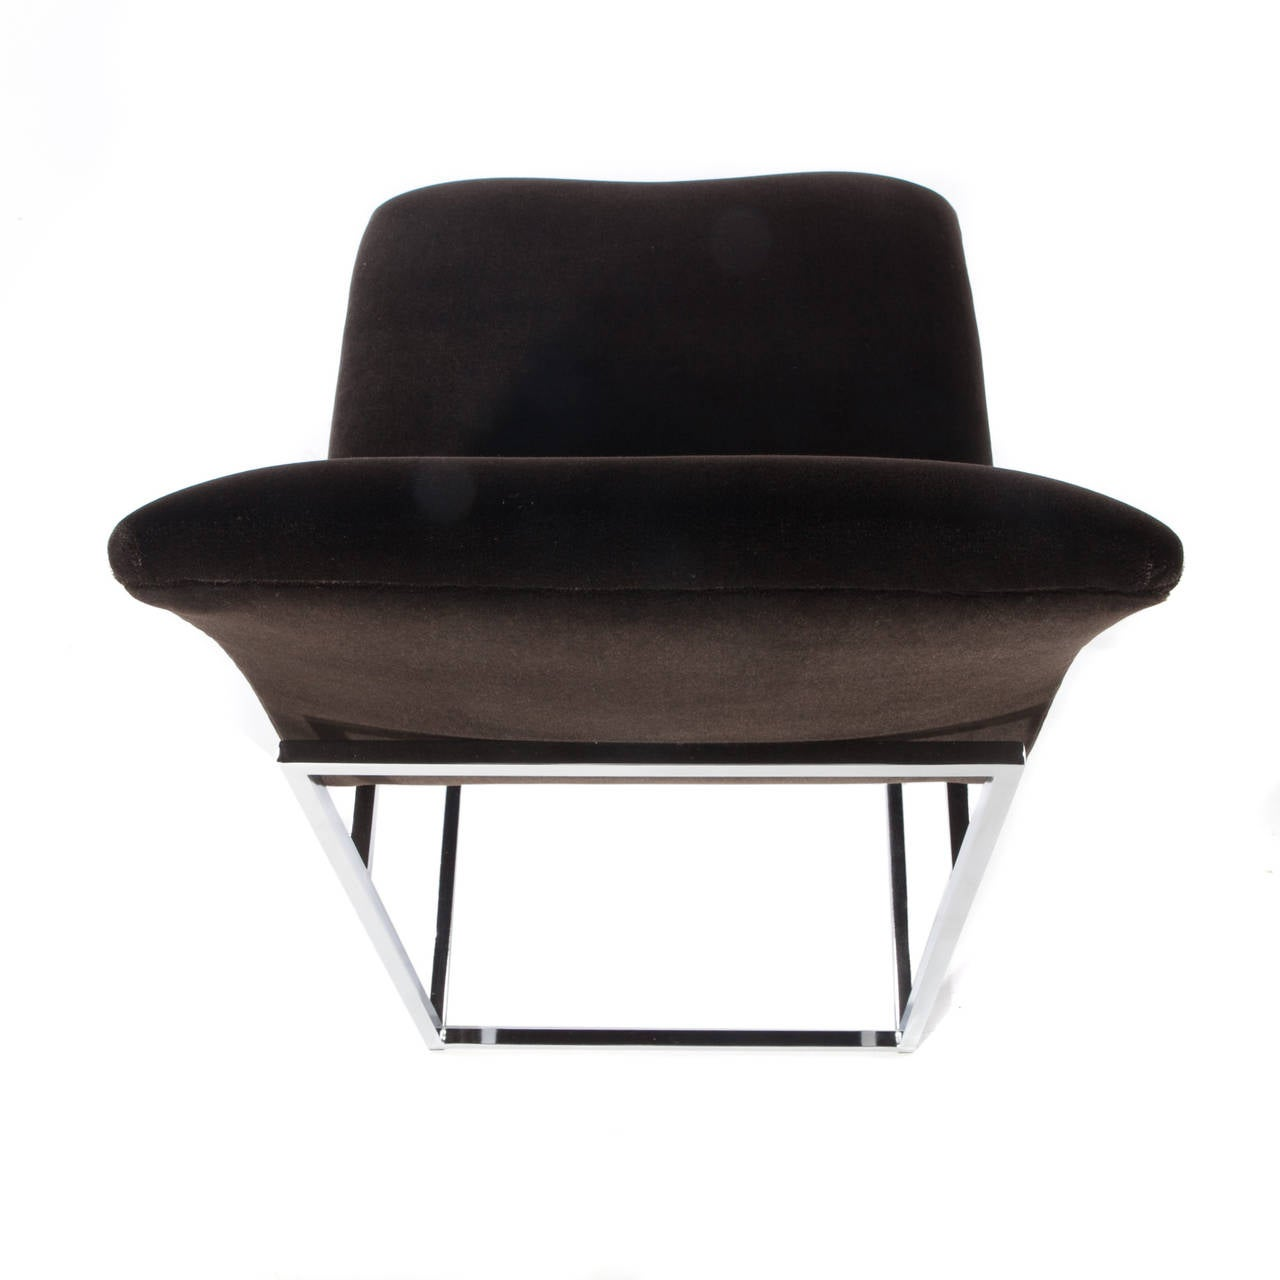 Late 20th Century Set of Four Chrome and Mohair Dining Chairs by Milo Baughman, Circa 1970s For Sale